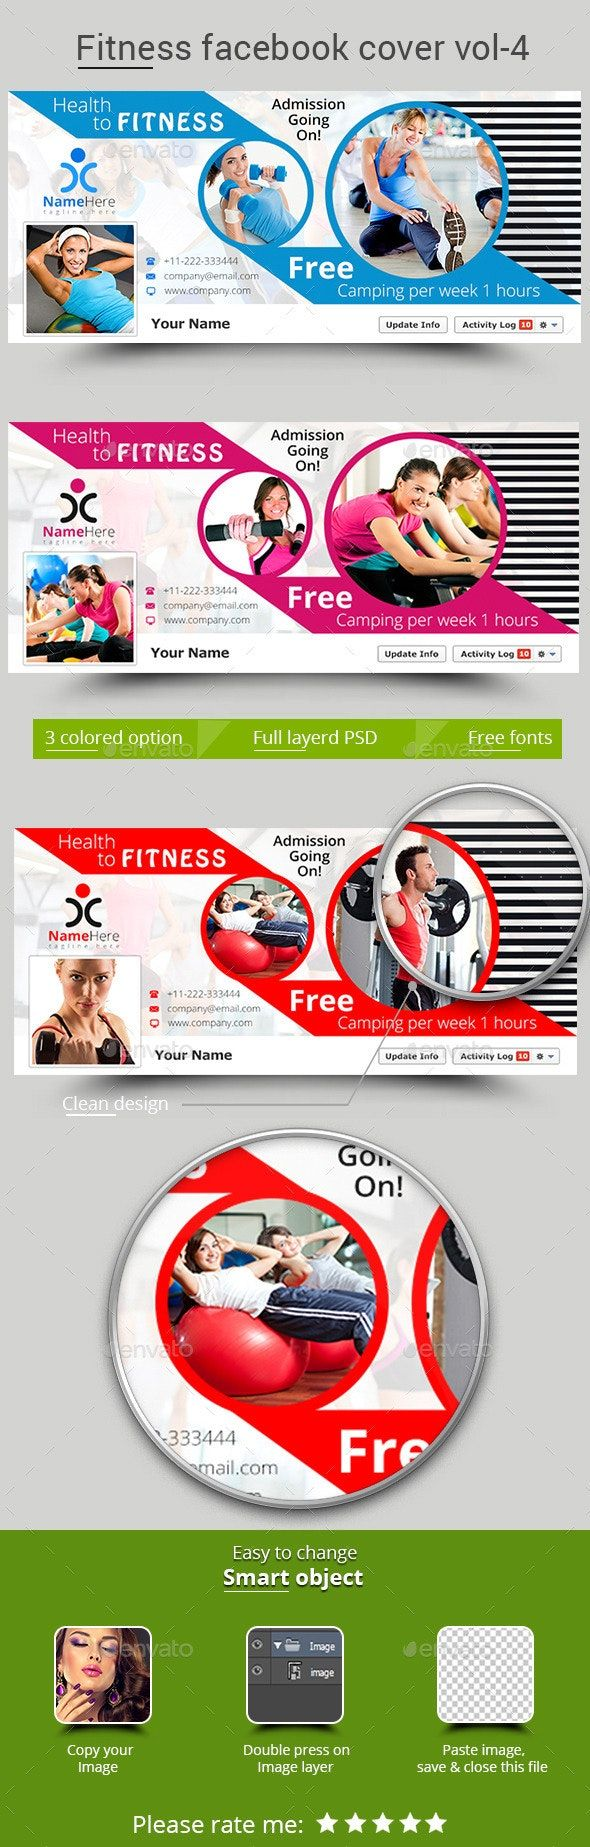 Fitness Facebook Cover Vol- 4 #Affiliate #Facebook, #AD, #Fitness, #Vol, #Cover